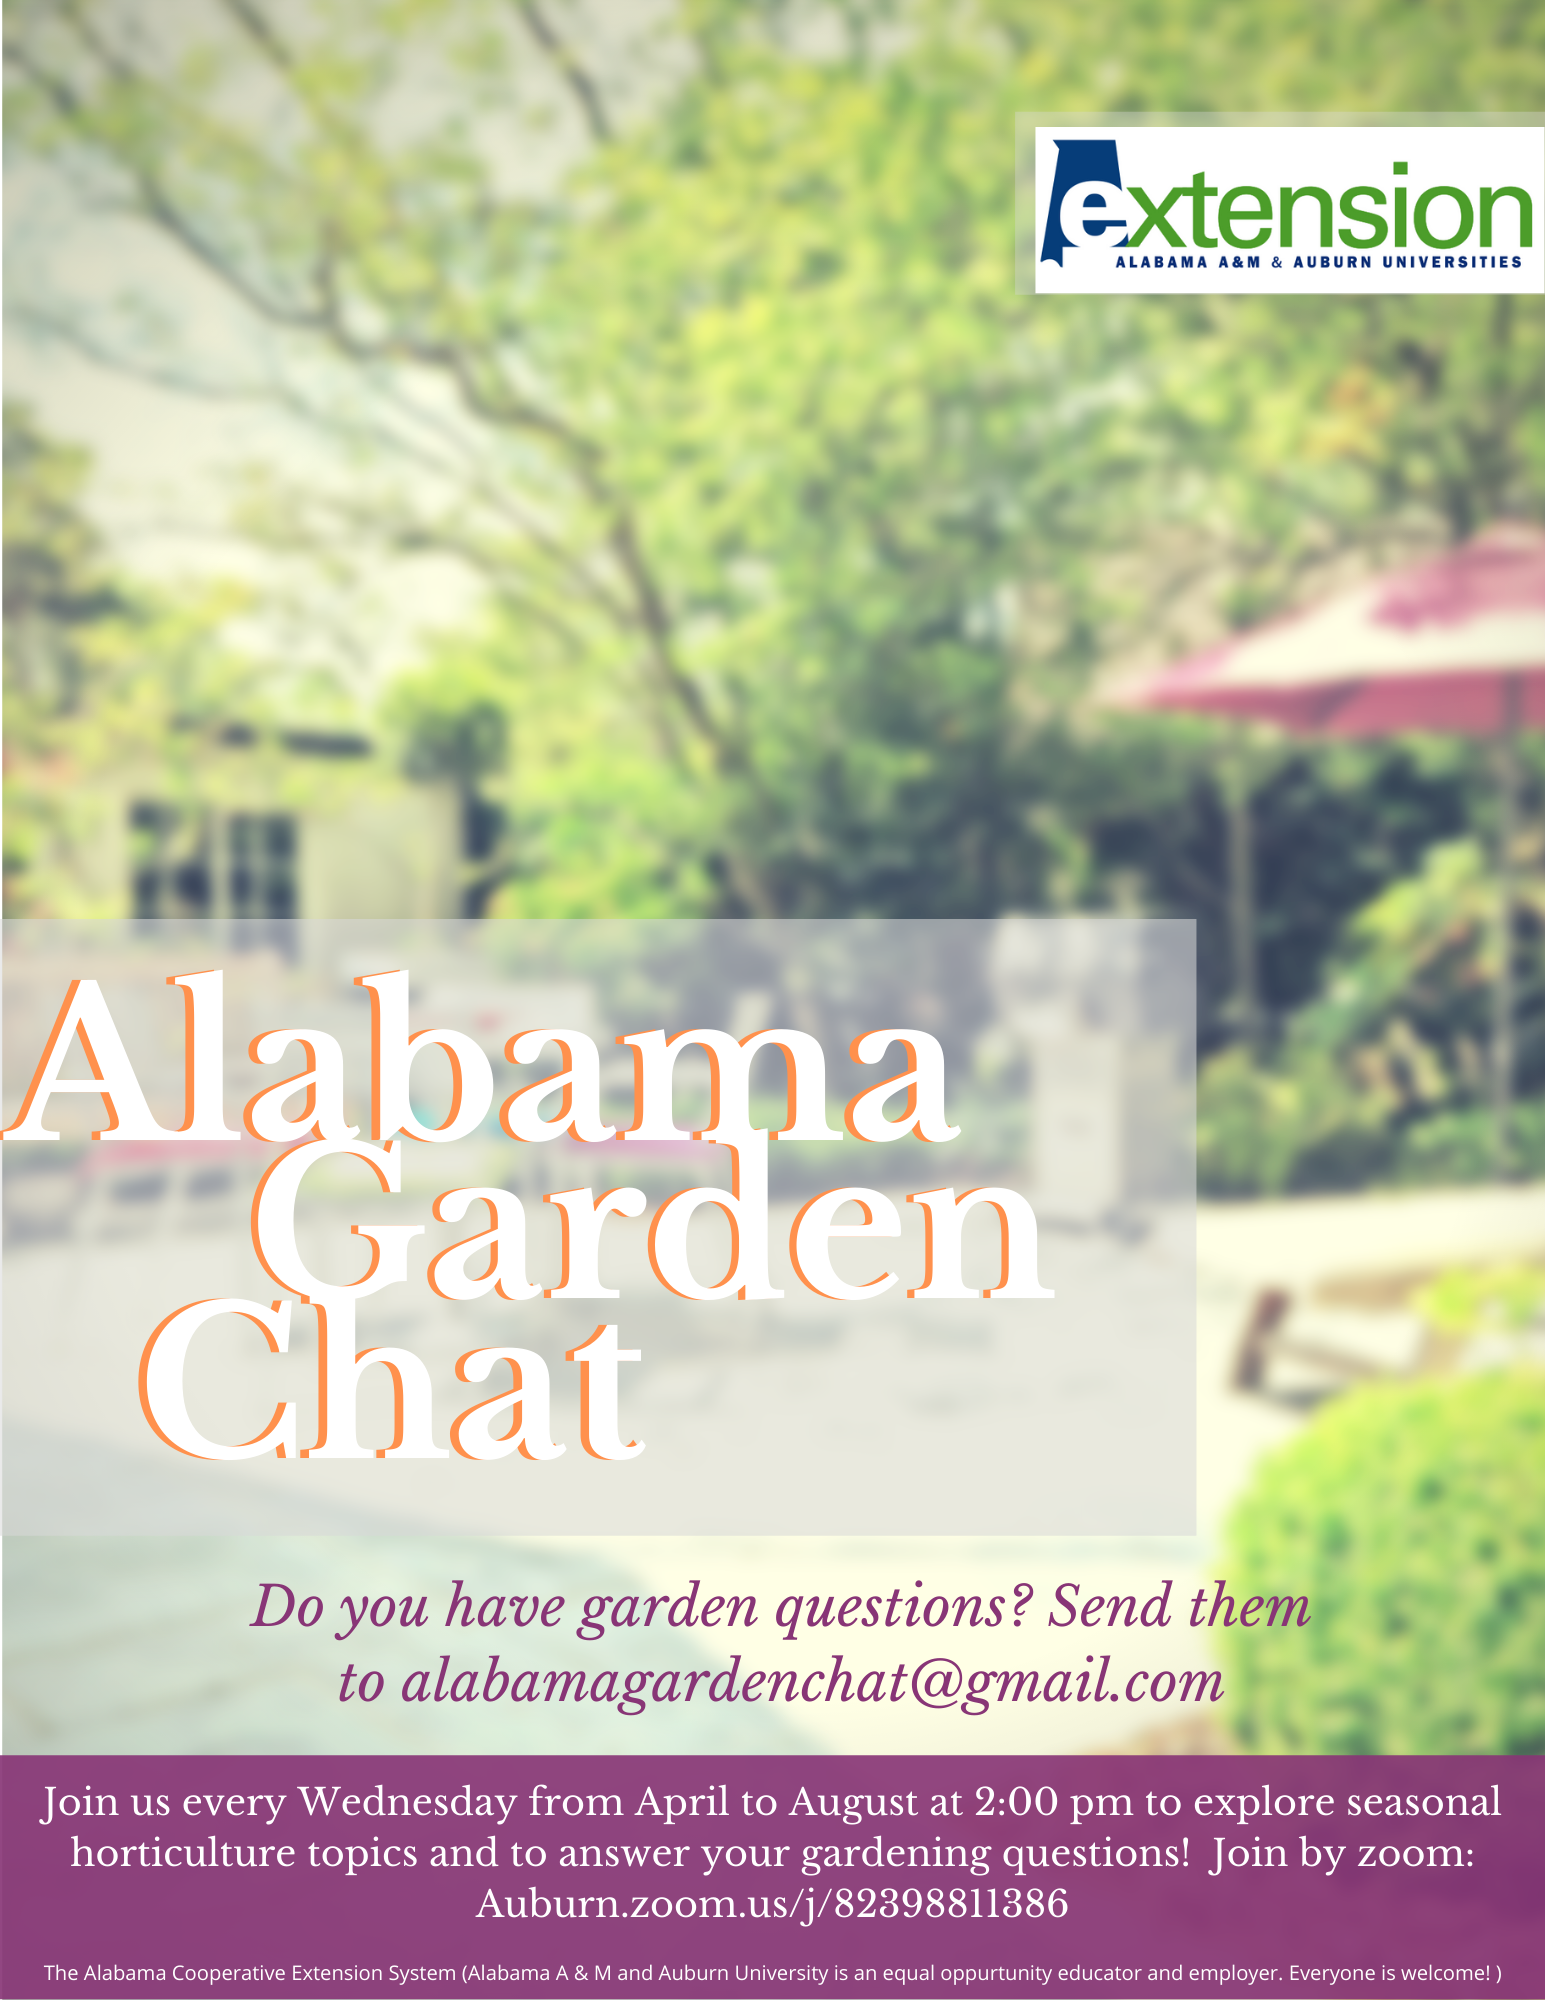 Alabama_Garden_Chat_2021_PNG_002.png